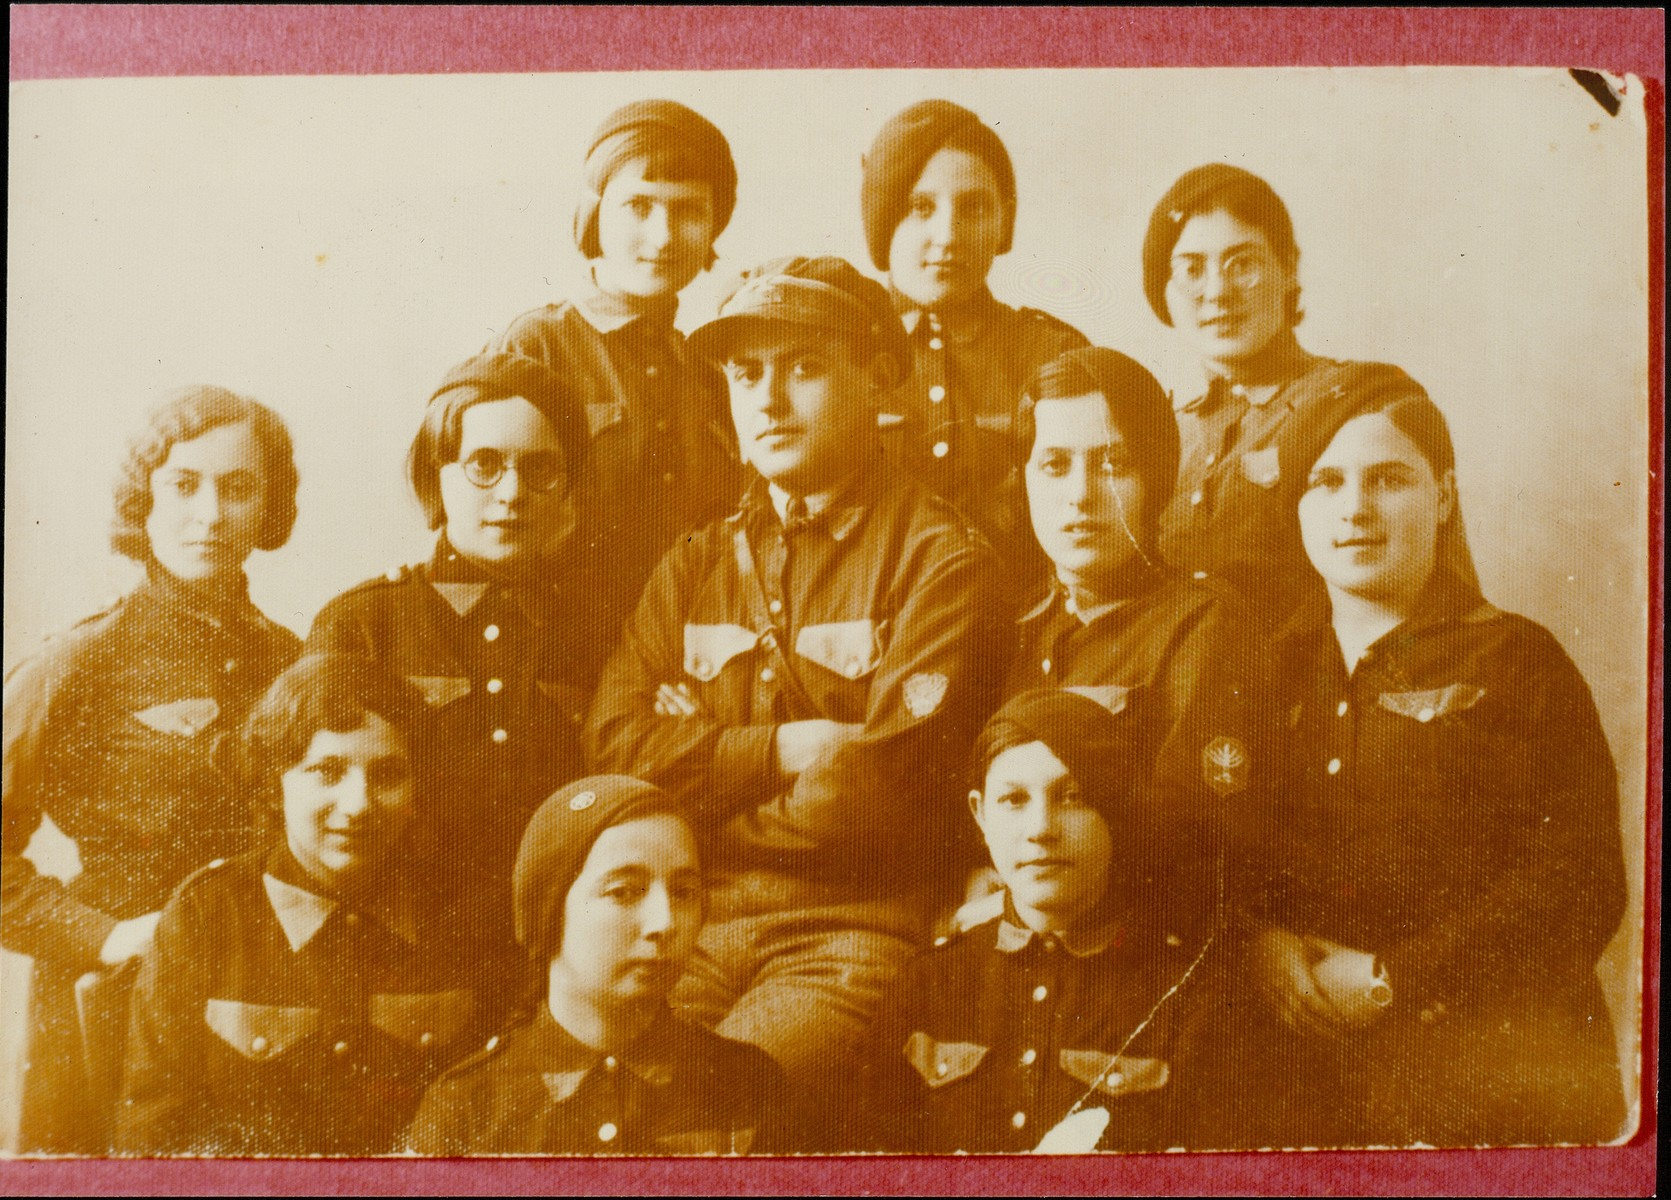 Members of the Betar Zionist youth group.   Pictured include Shoshana and Tzipora Hutner.